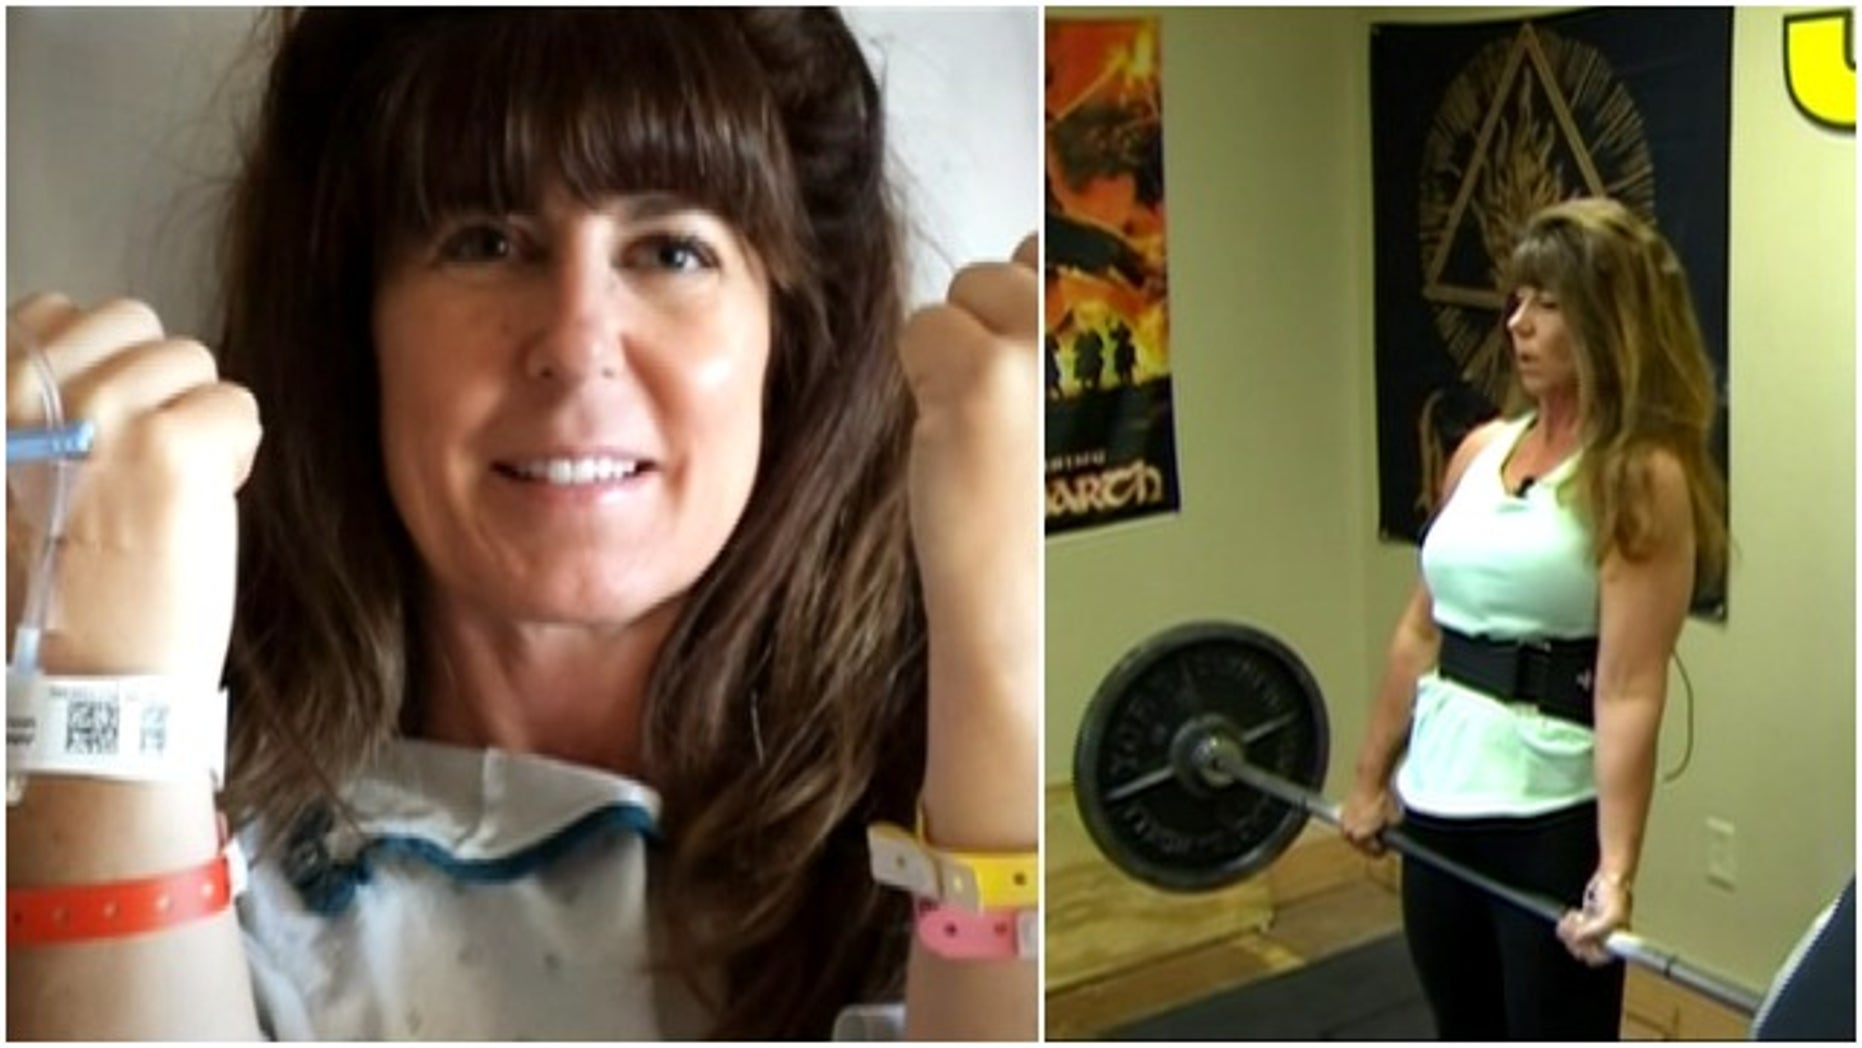 Lisa Johnson beat cancer and is now focused on winning weightlifting competitions